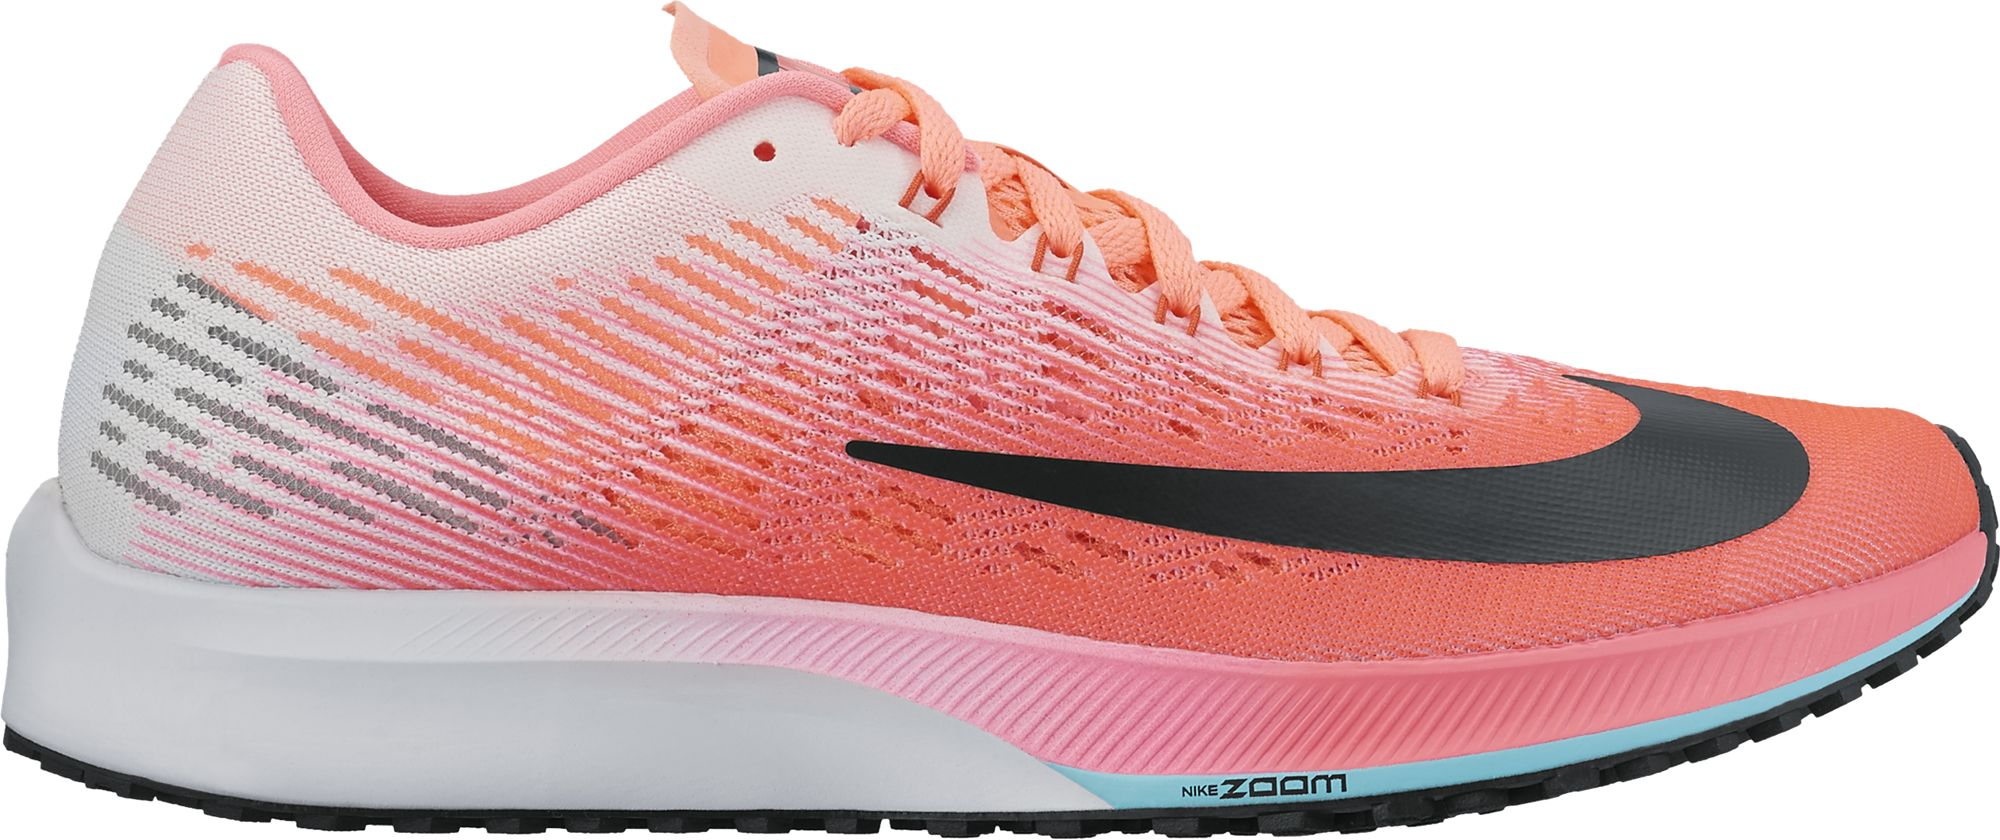 c8d28cc8233e2 Home   Shoes   Road   Nike Women s Zoom Elite 9. Sale!  863770-600-PHSRH000-2000